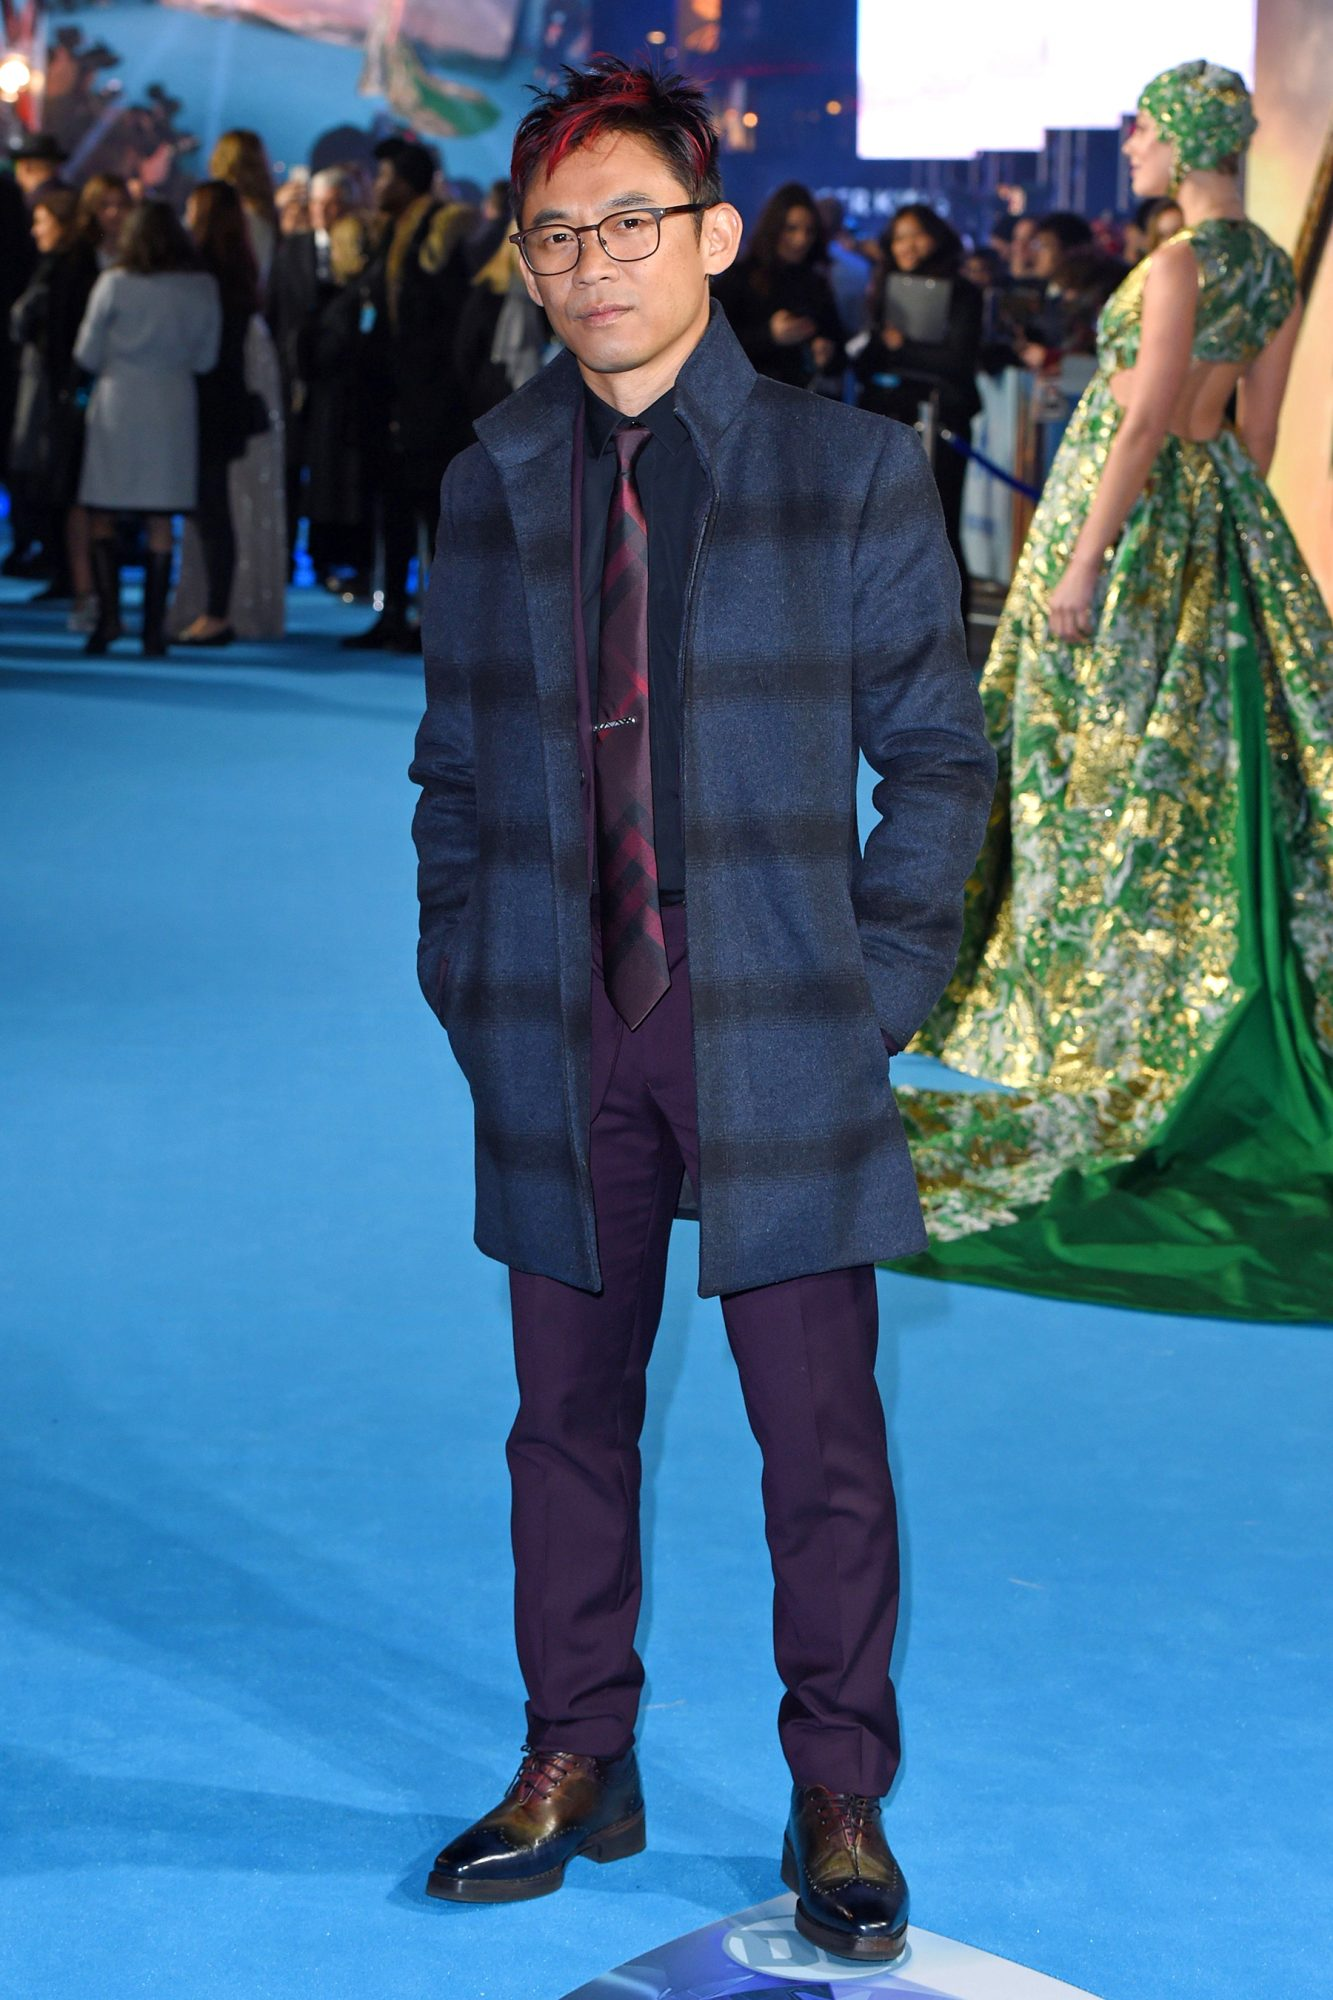 'Aquaman' film premiere, London, UK - 26 Nov 2018